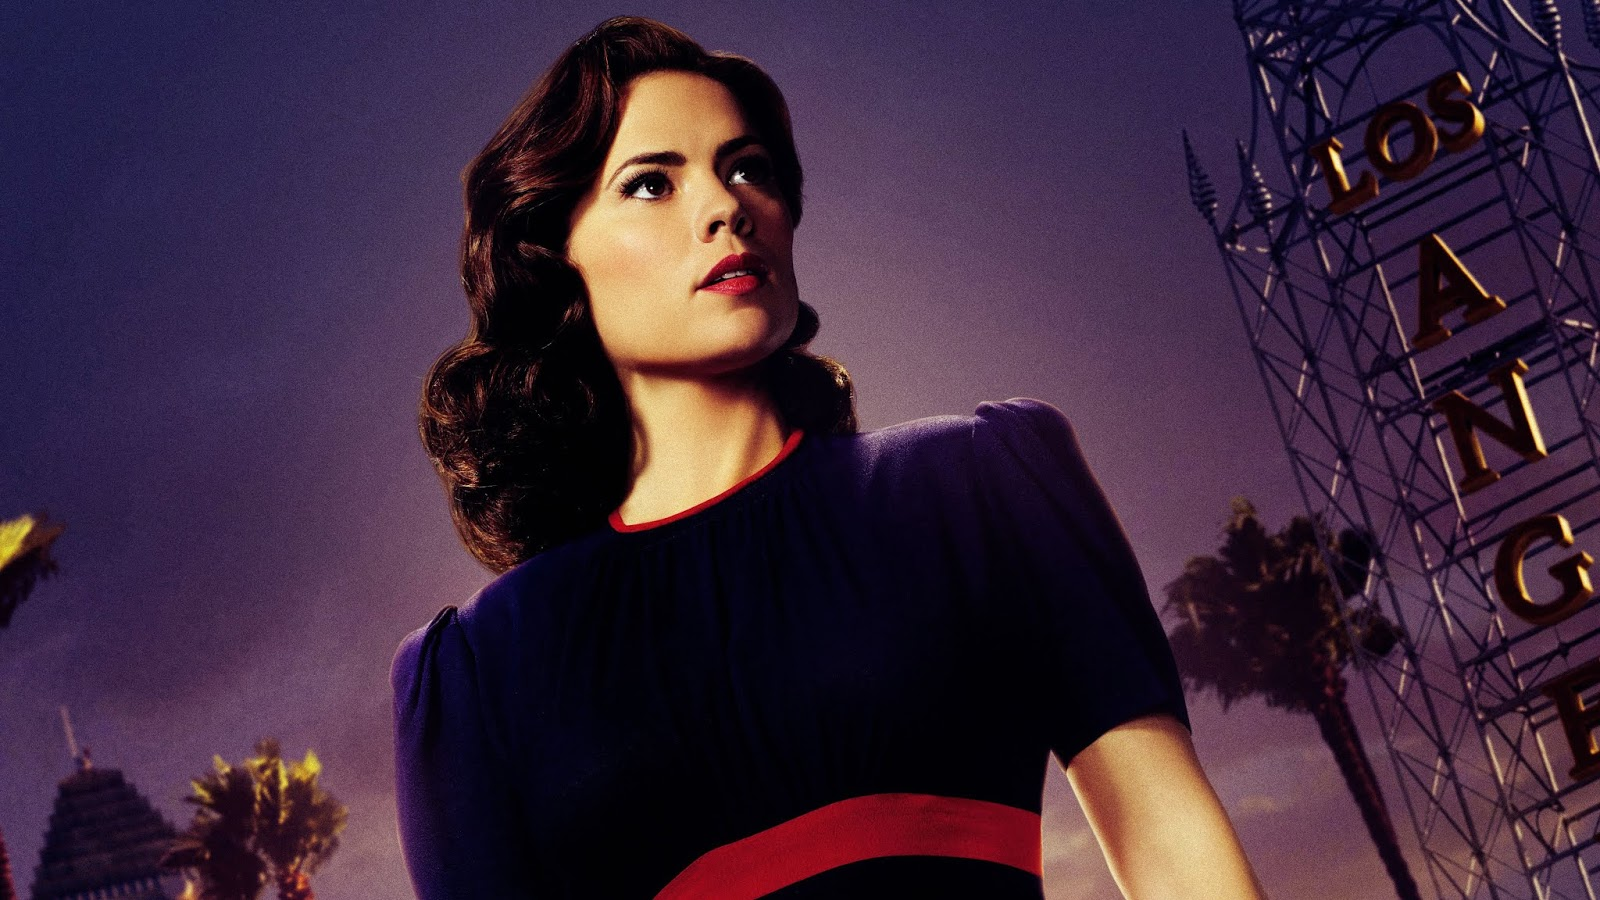 Agent Carter, Peggy Carter, Hayley Atwell, Marvel Comics, HD, TV Series